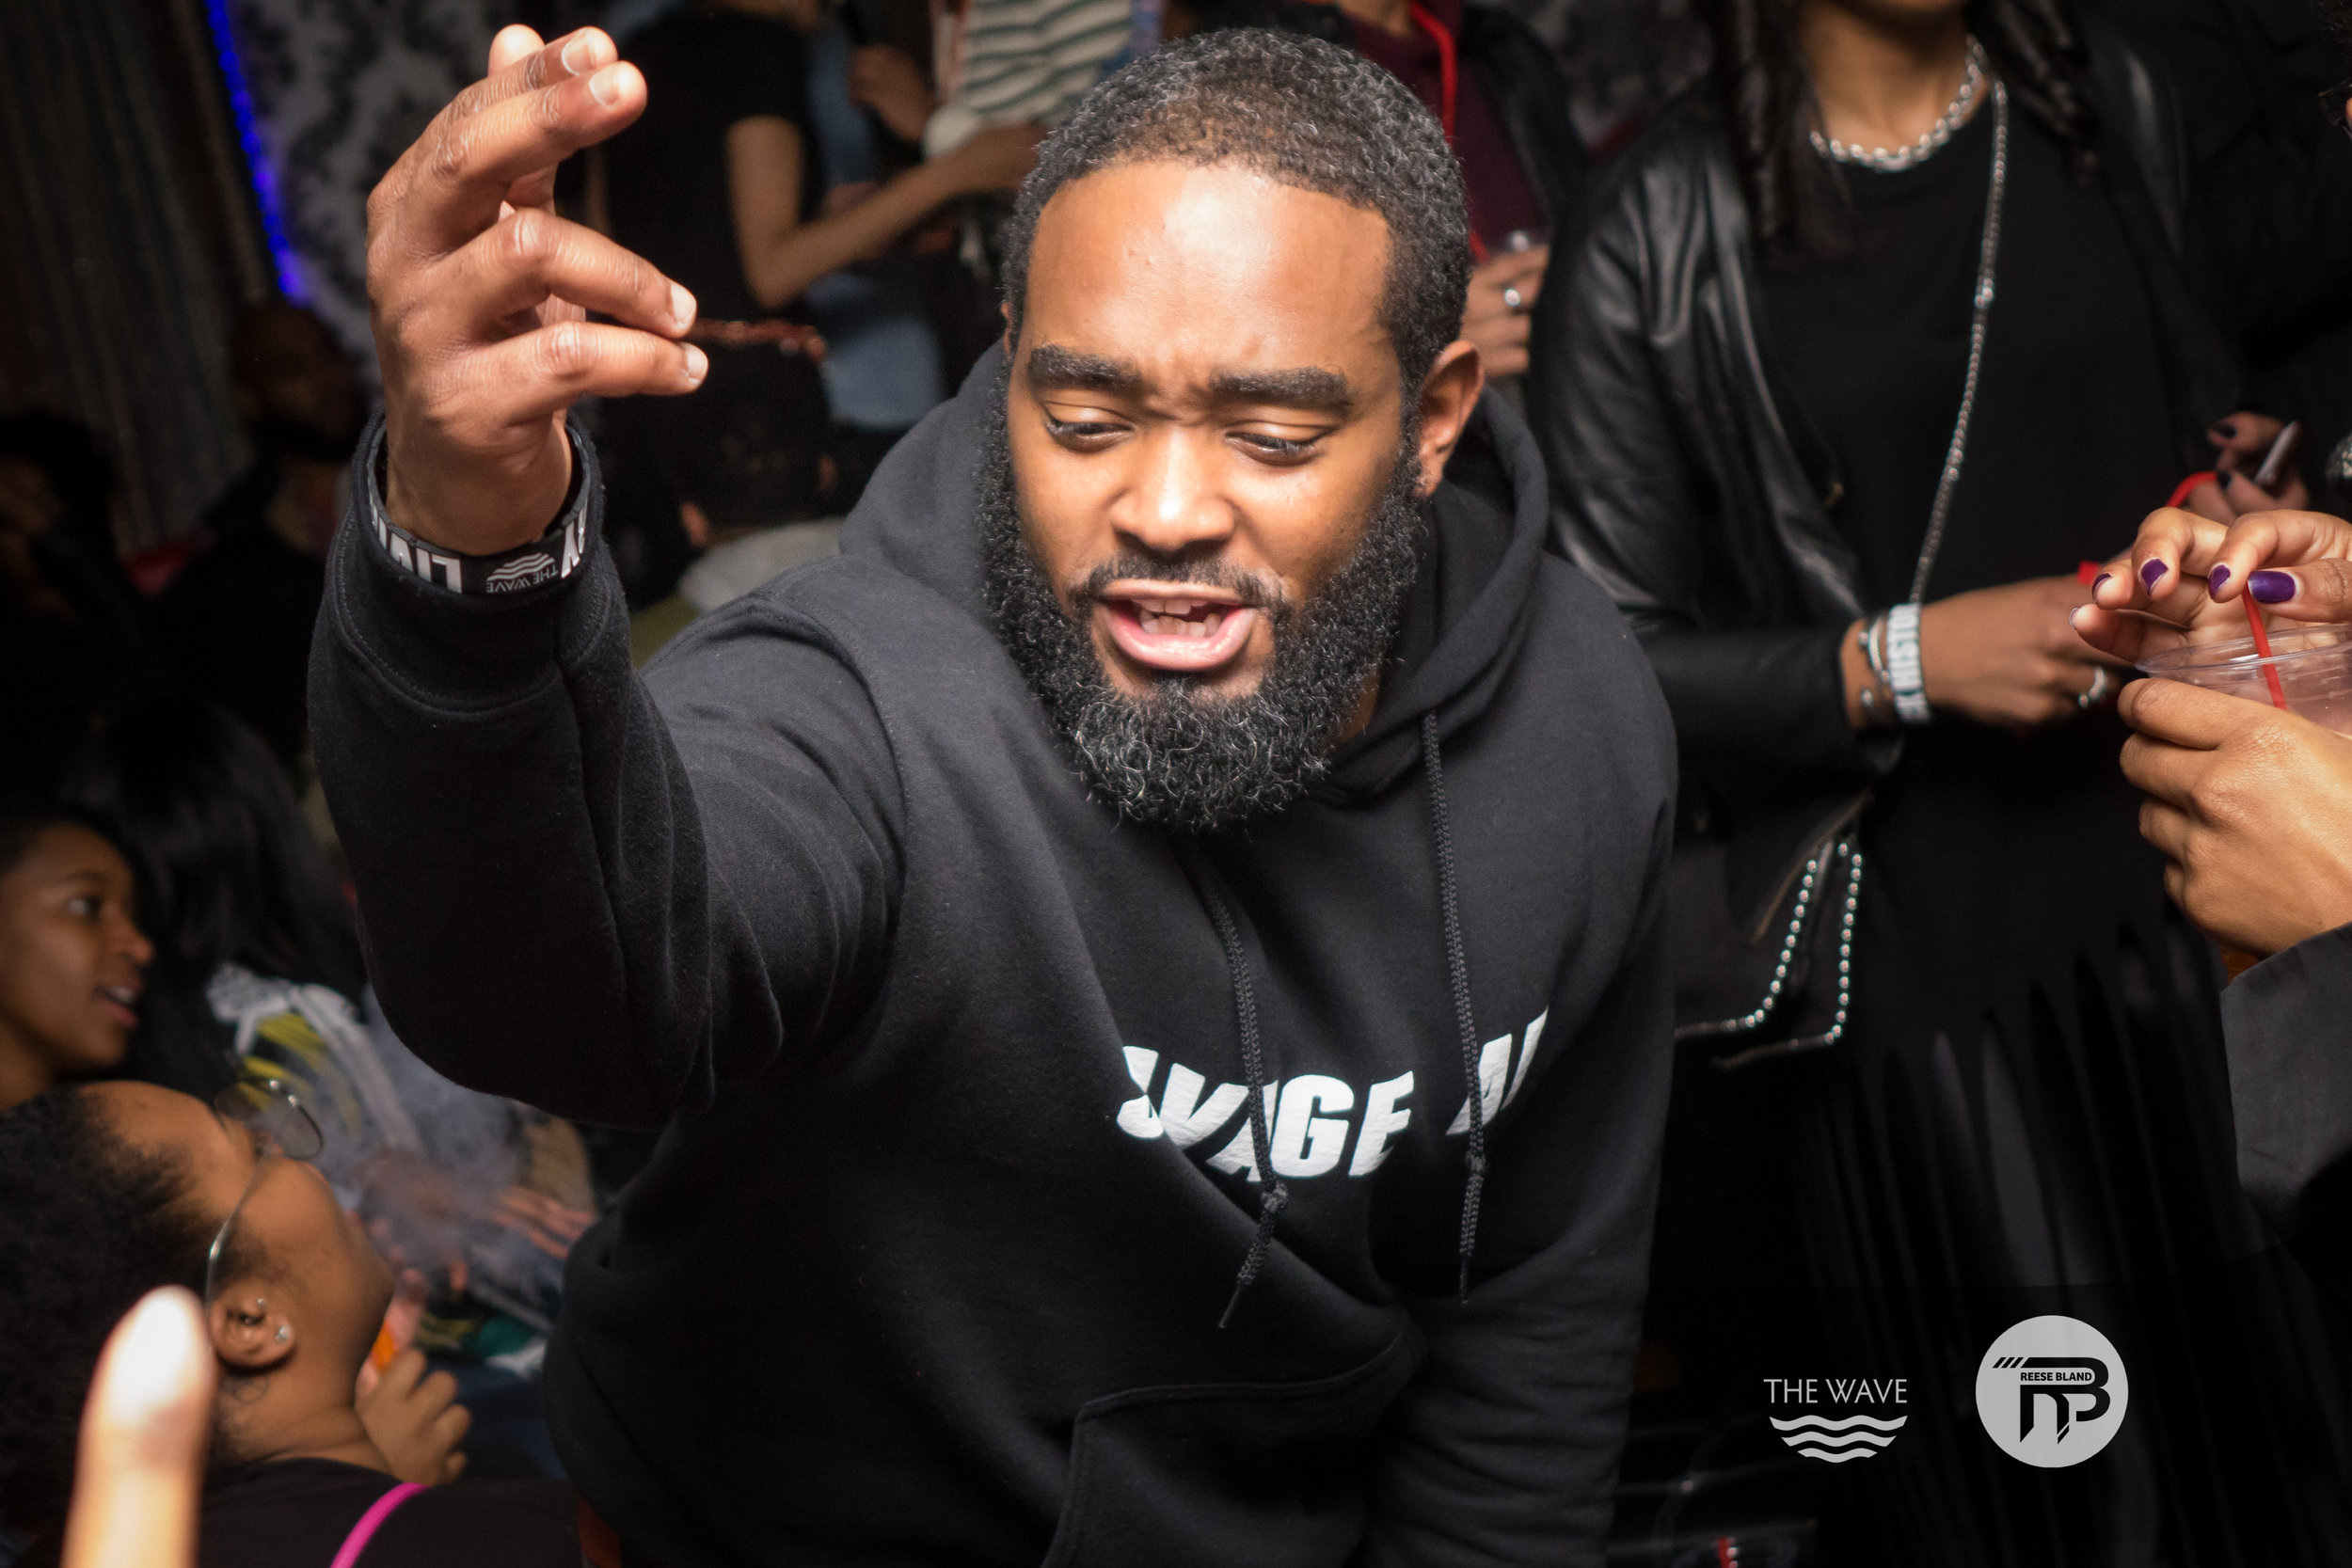 WaveDC-BlackBarCrawl-2-2018-06630.jpg